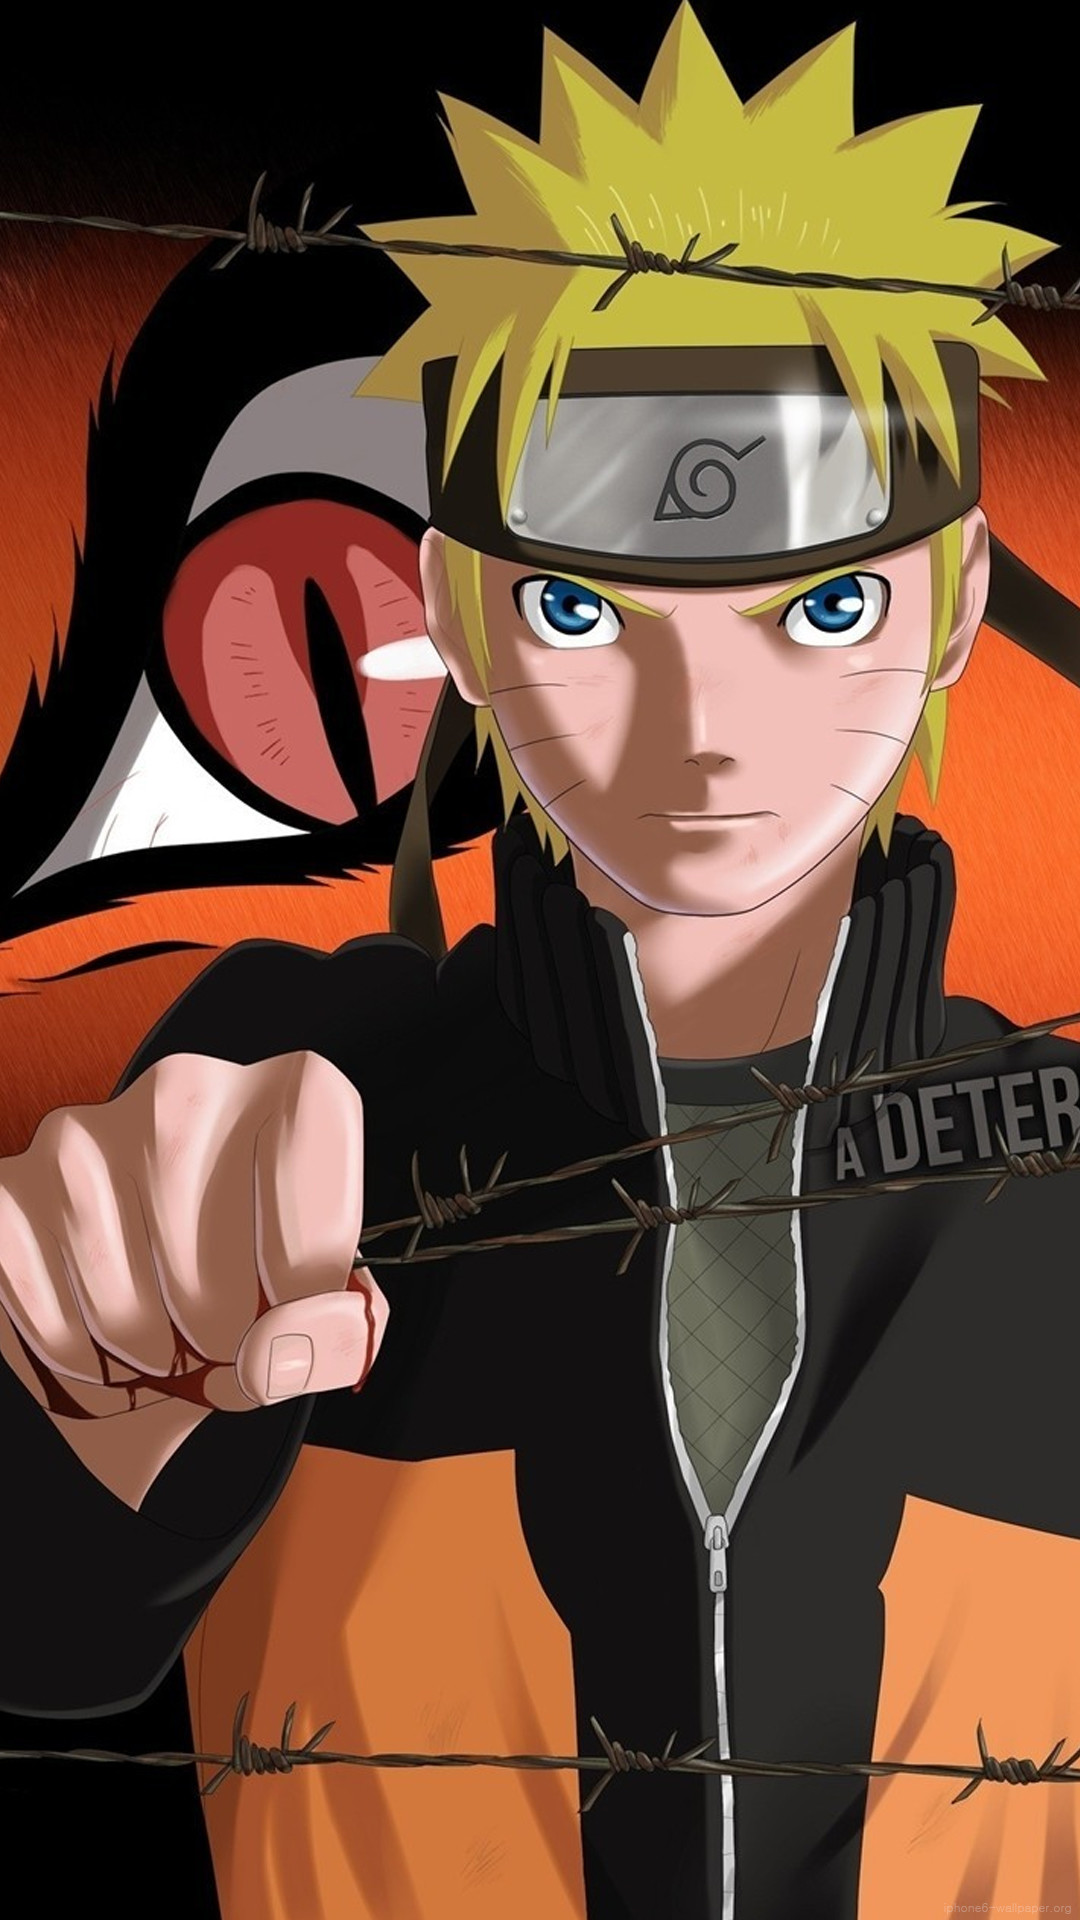 Sharingan Live Wallpaper Iphone X Naruto Wallpapers Hd For Iphone 77 Images